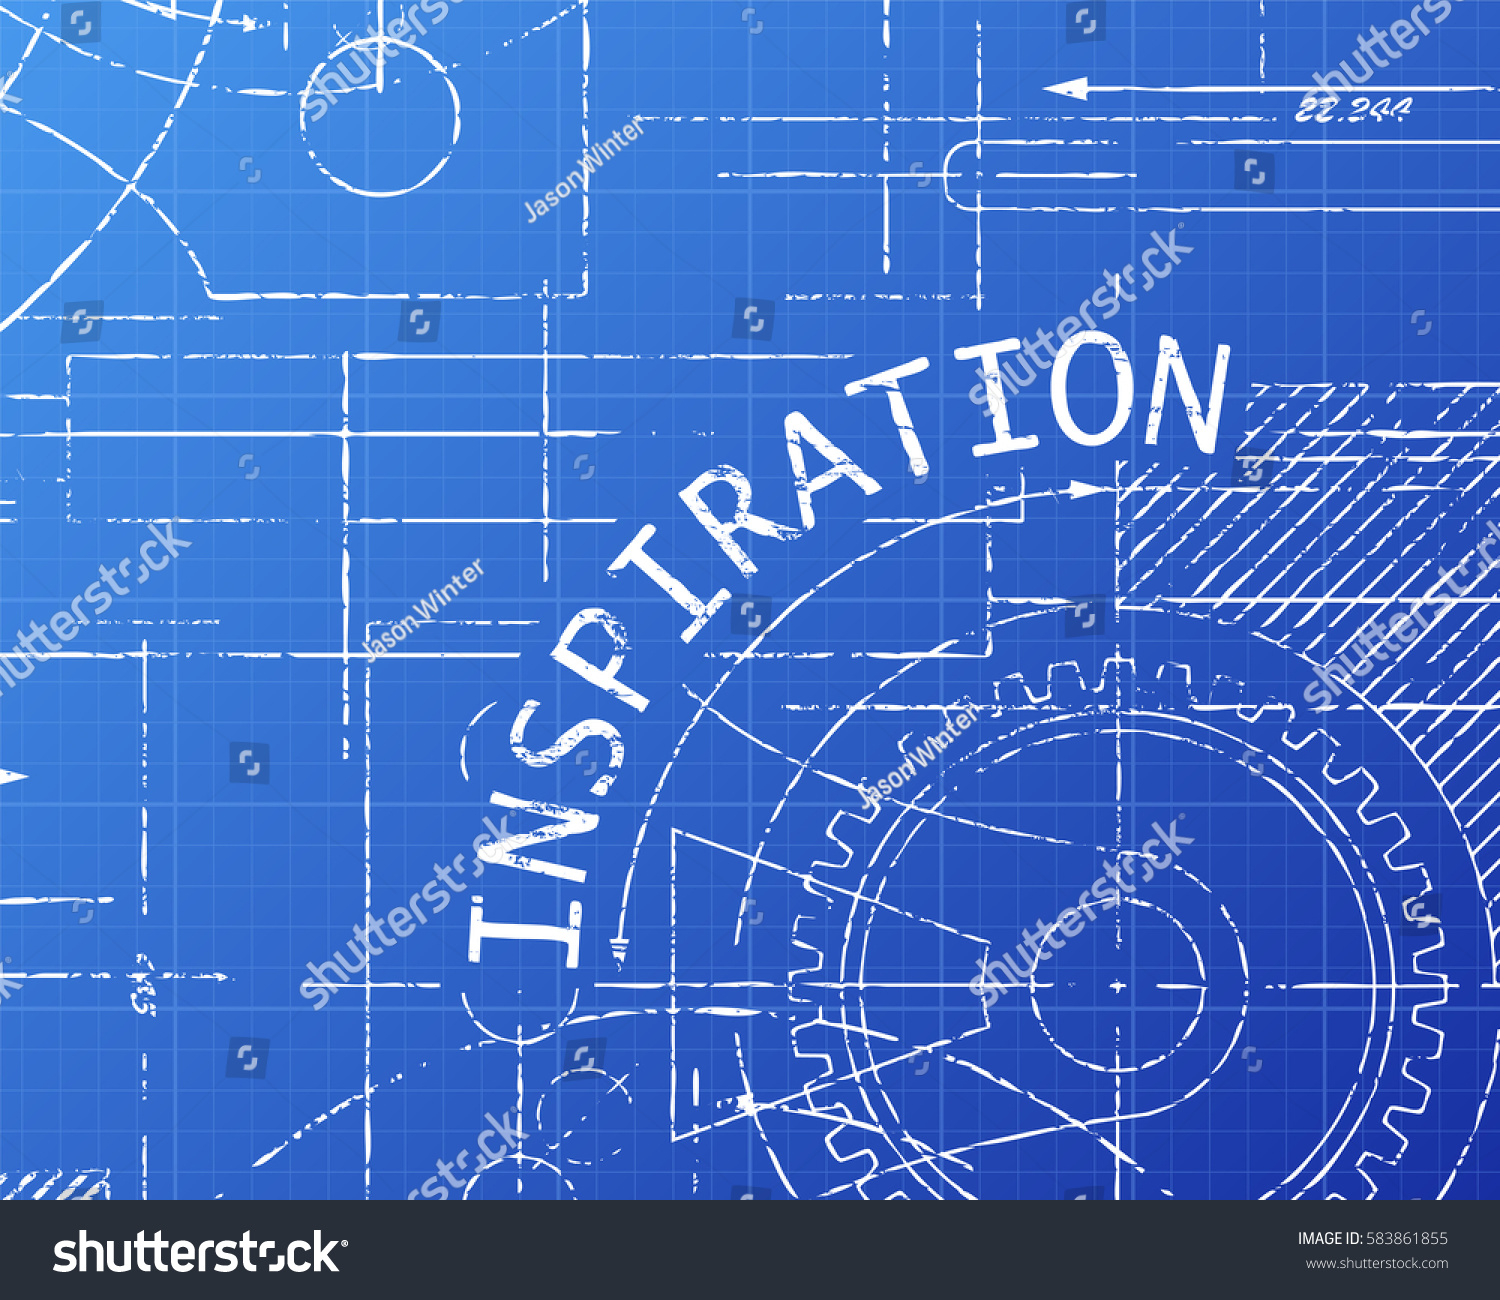 Inspiration text gear wheels hand drawn vectores en stock 583861855 inspiration text with gear wheels hand drawn on blueprint technical drawing background malvernweather Gallery